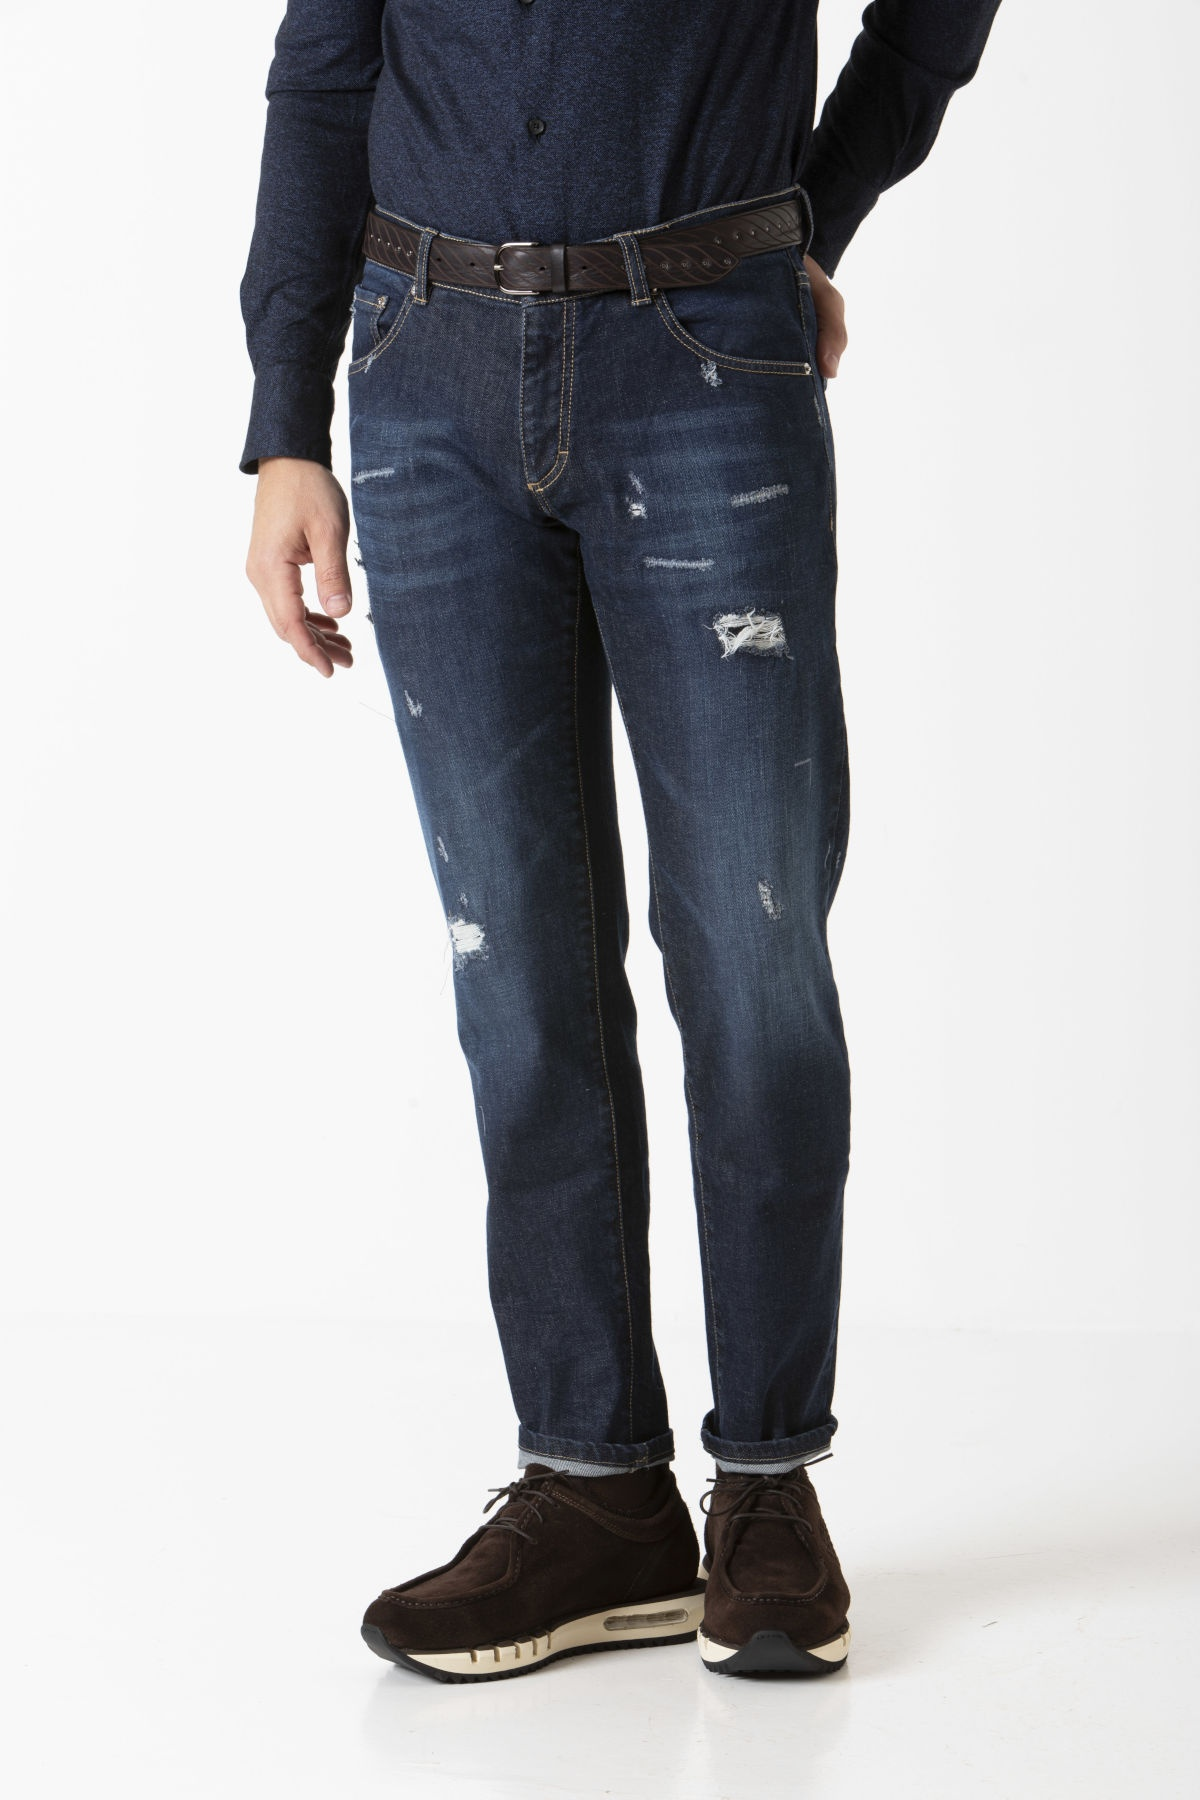 Jeans for man LES HOMMES URBAN F/W 19-20